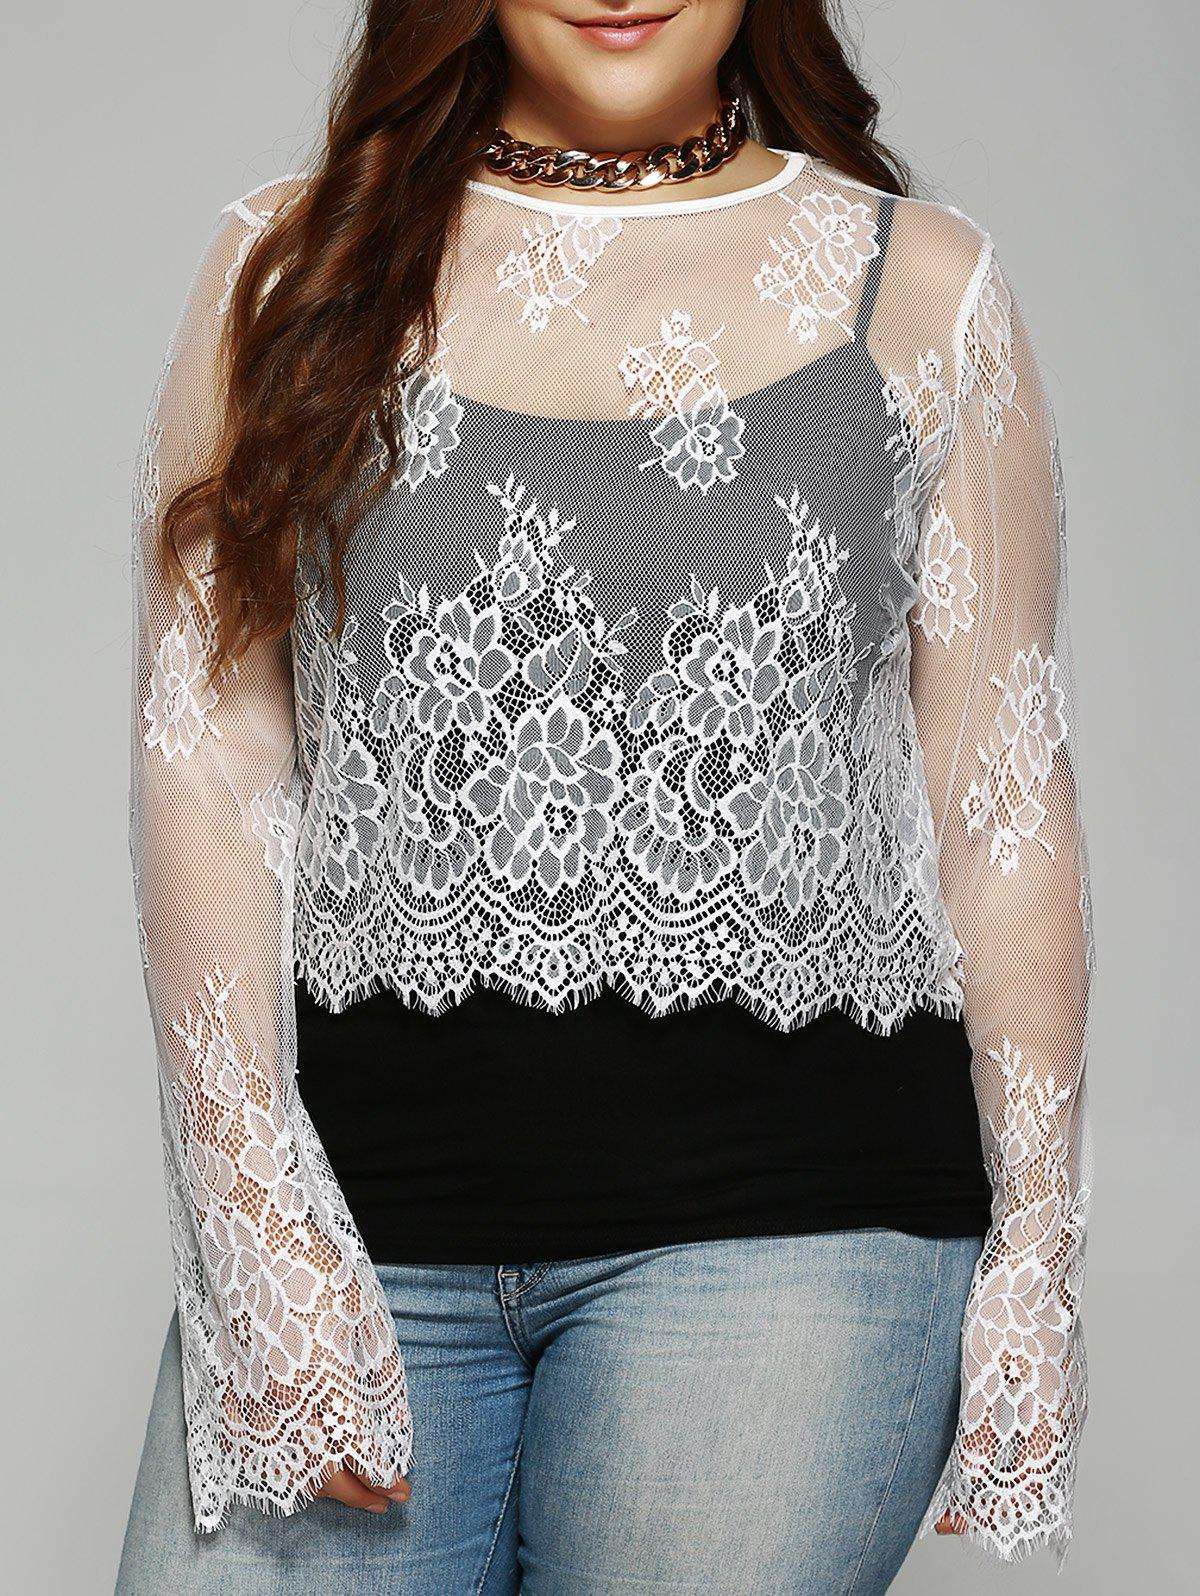 Plus Size Round Collar  See-Through Lace Top - WHITE 5XL